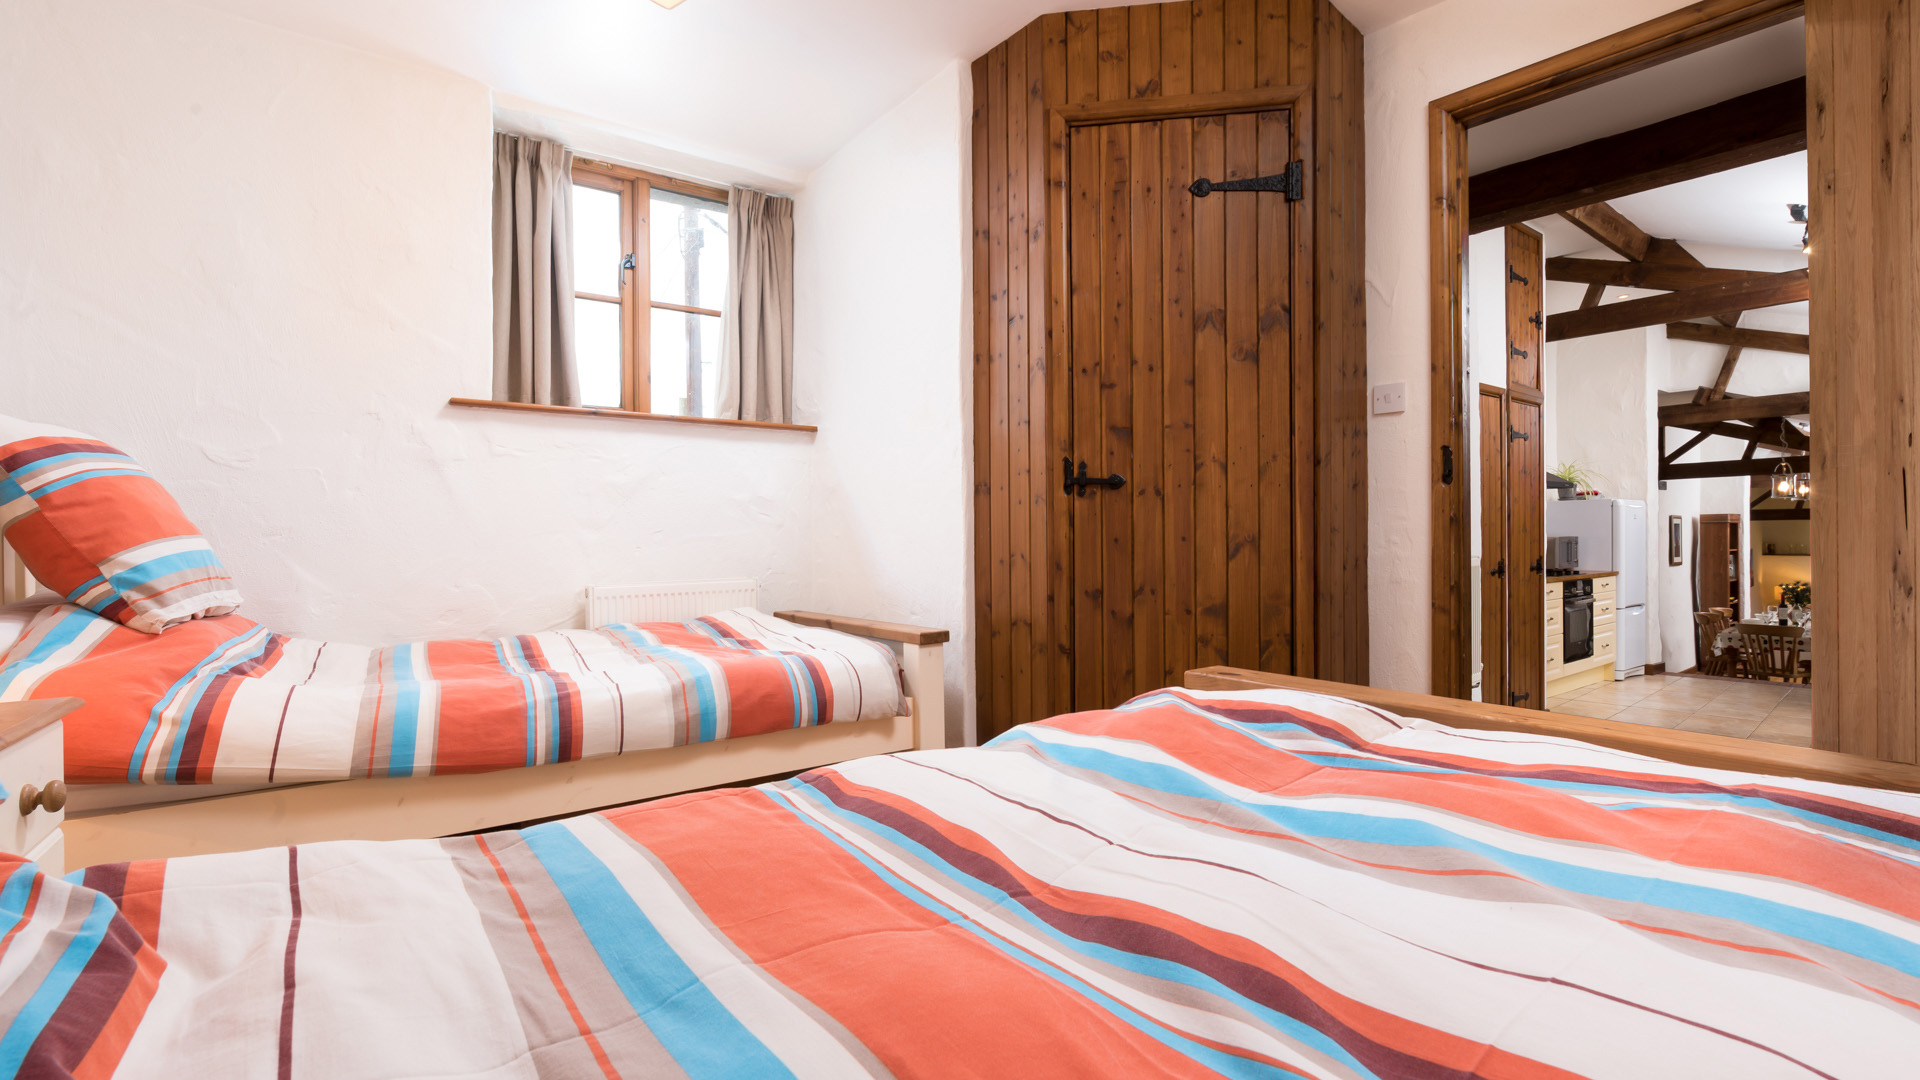 The Byre twin bedroom